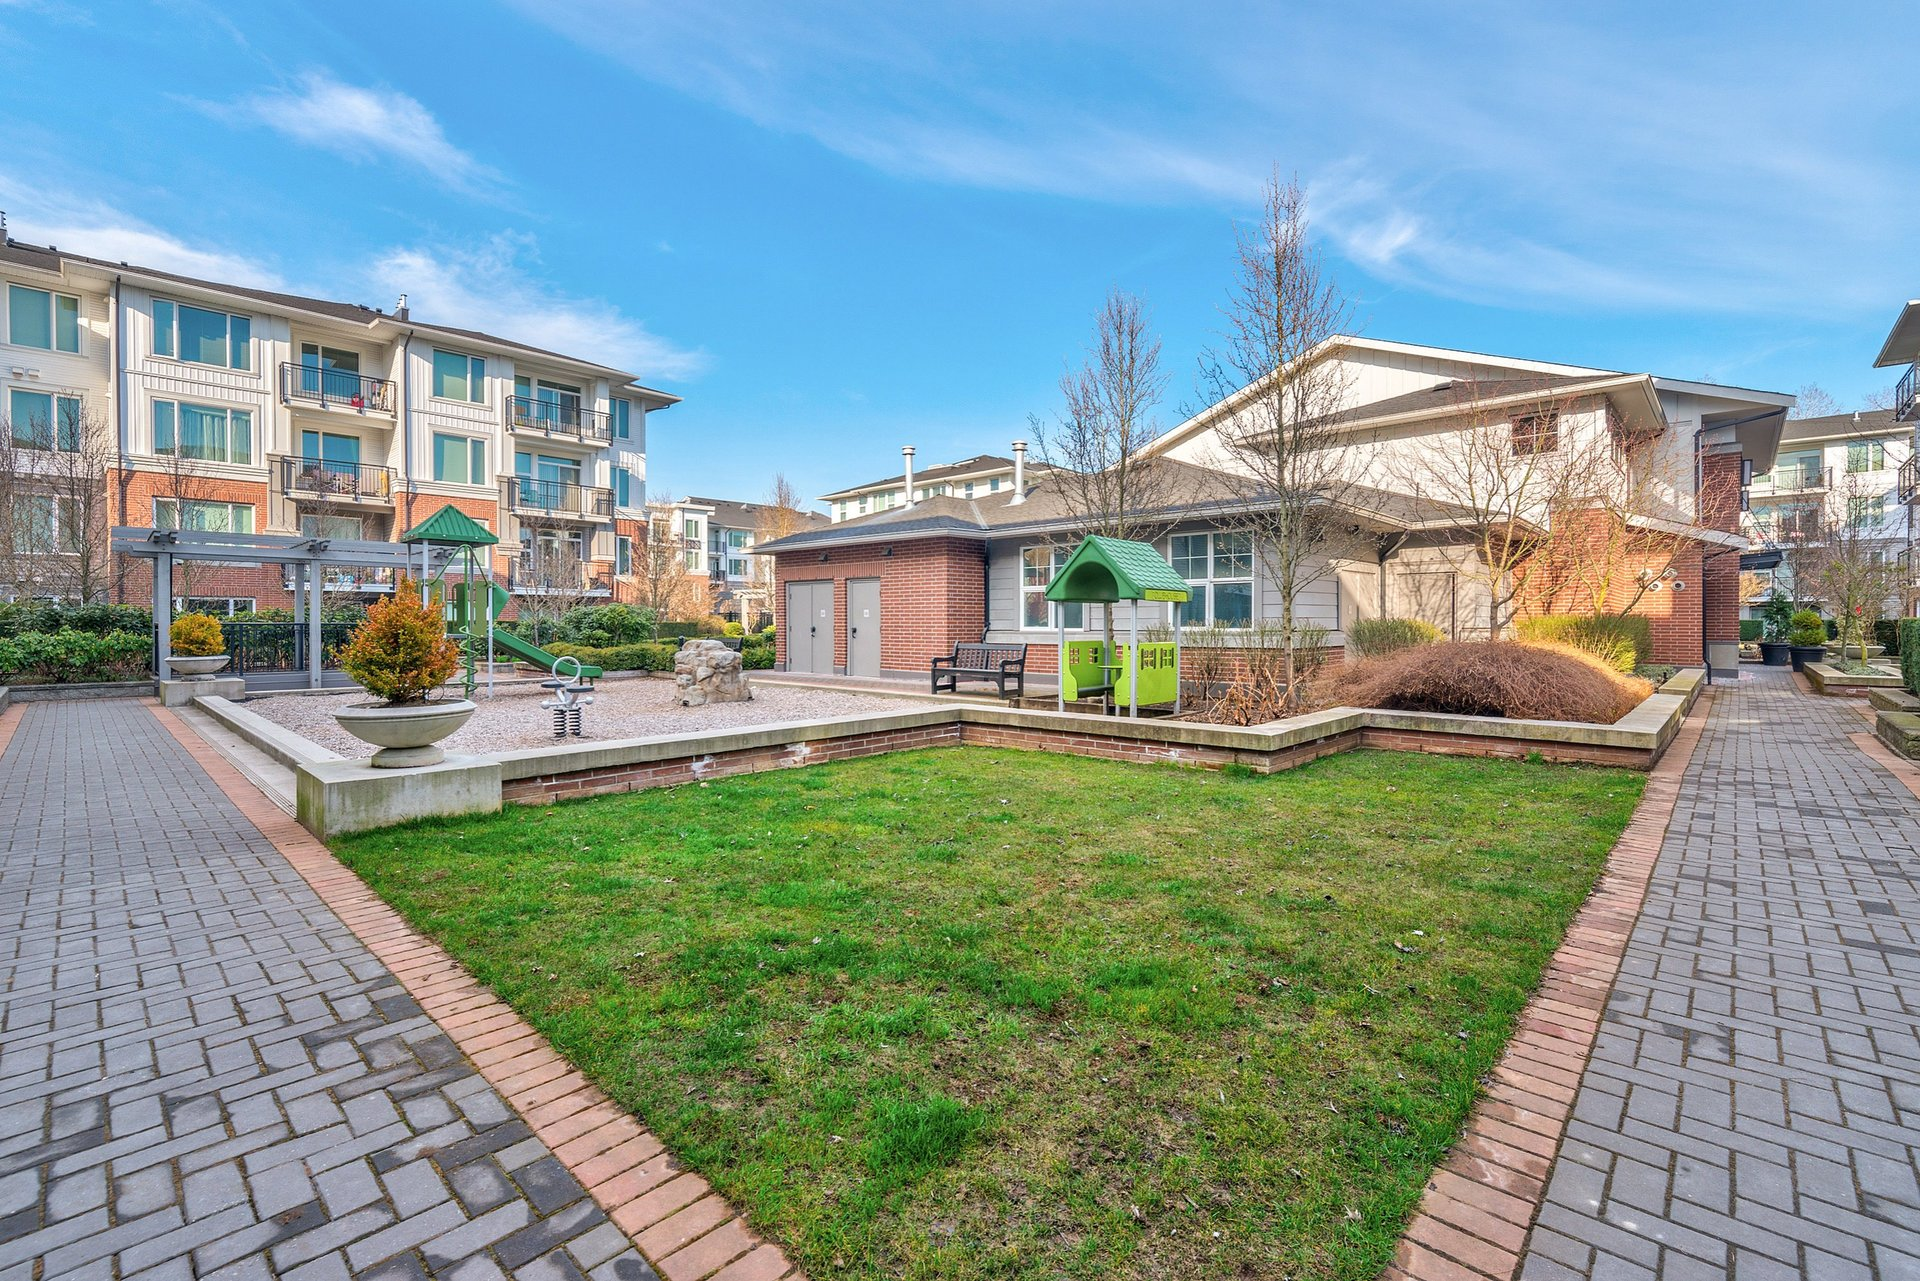 39475_25 at 337 - 9388 Mckim Way, West Cambie, Richmond